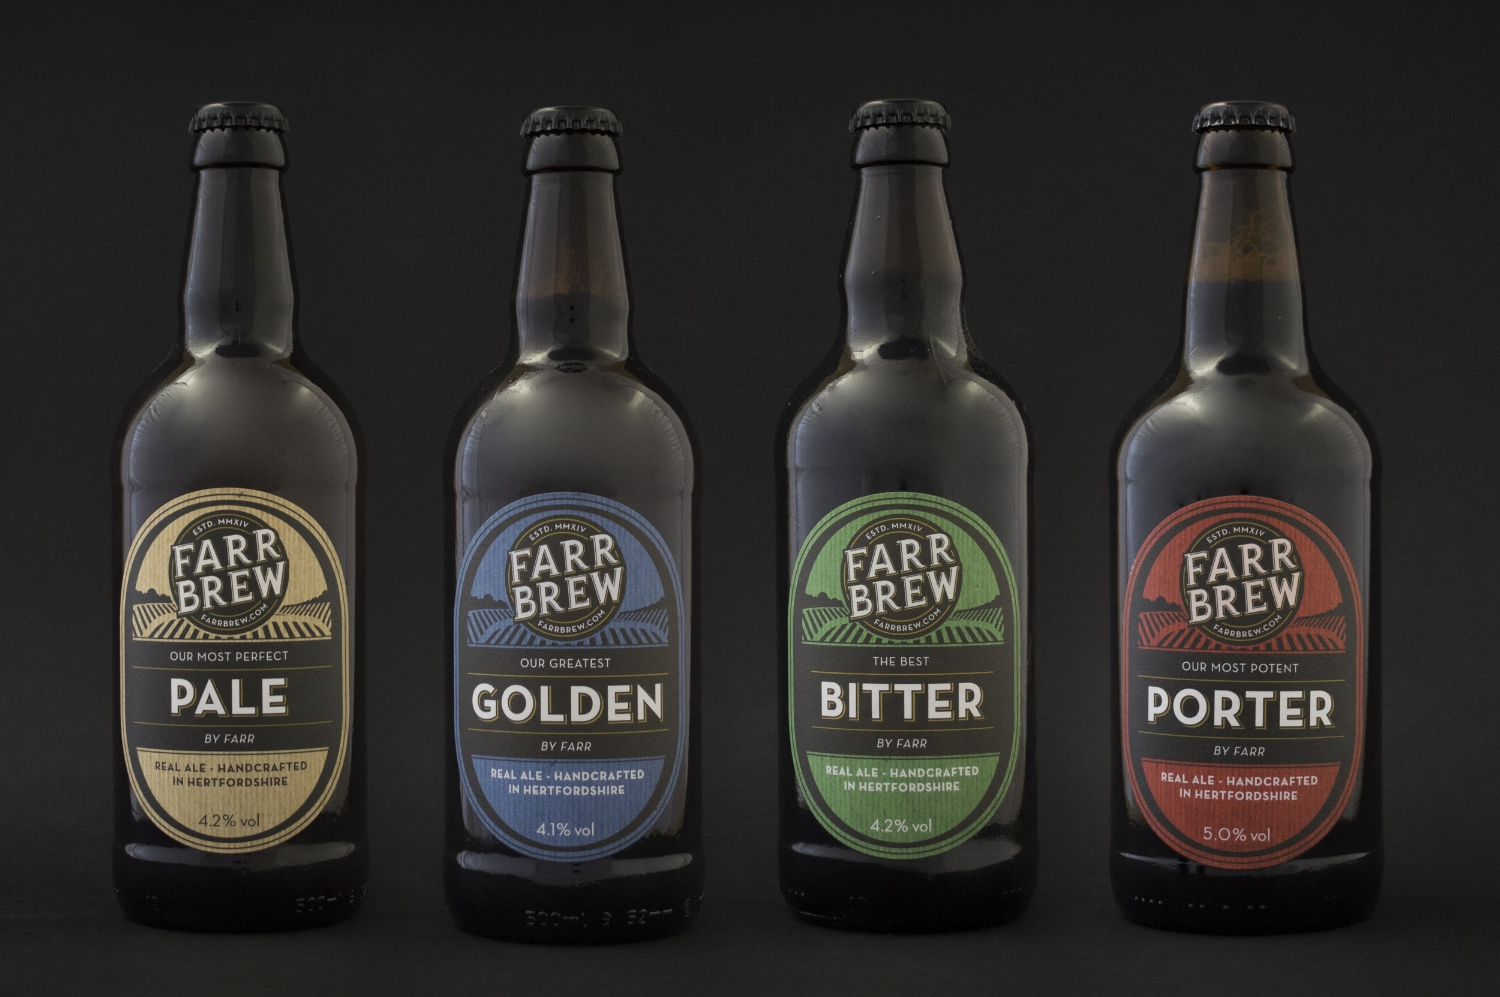 onebigcompany-packaging-design-art-direction-beer-bottle-label-farr-brew-1.jpg